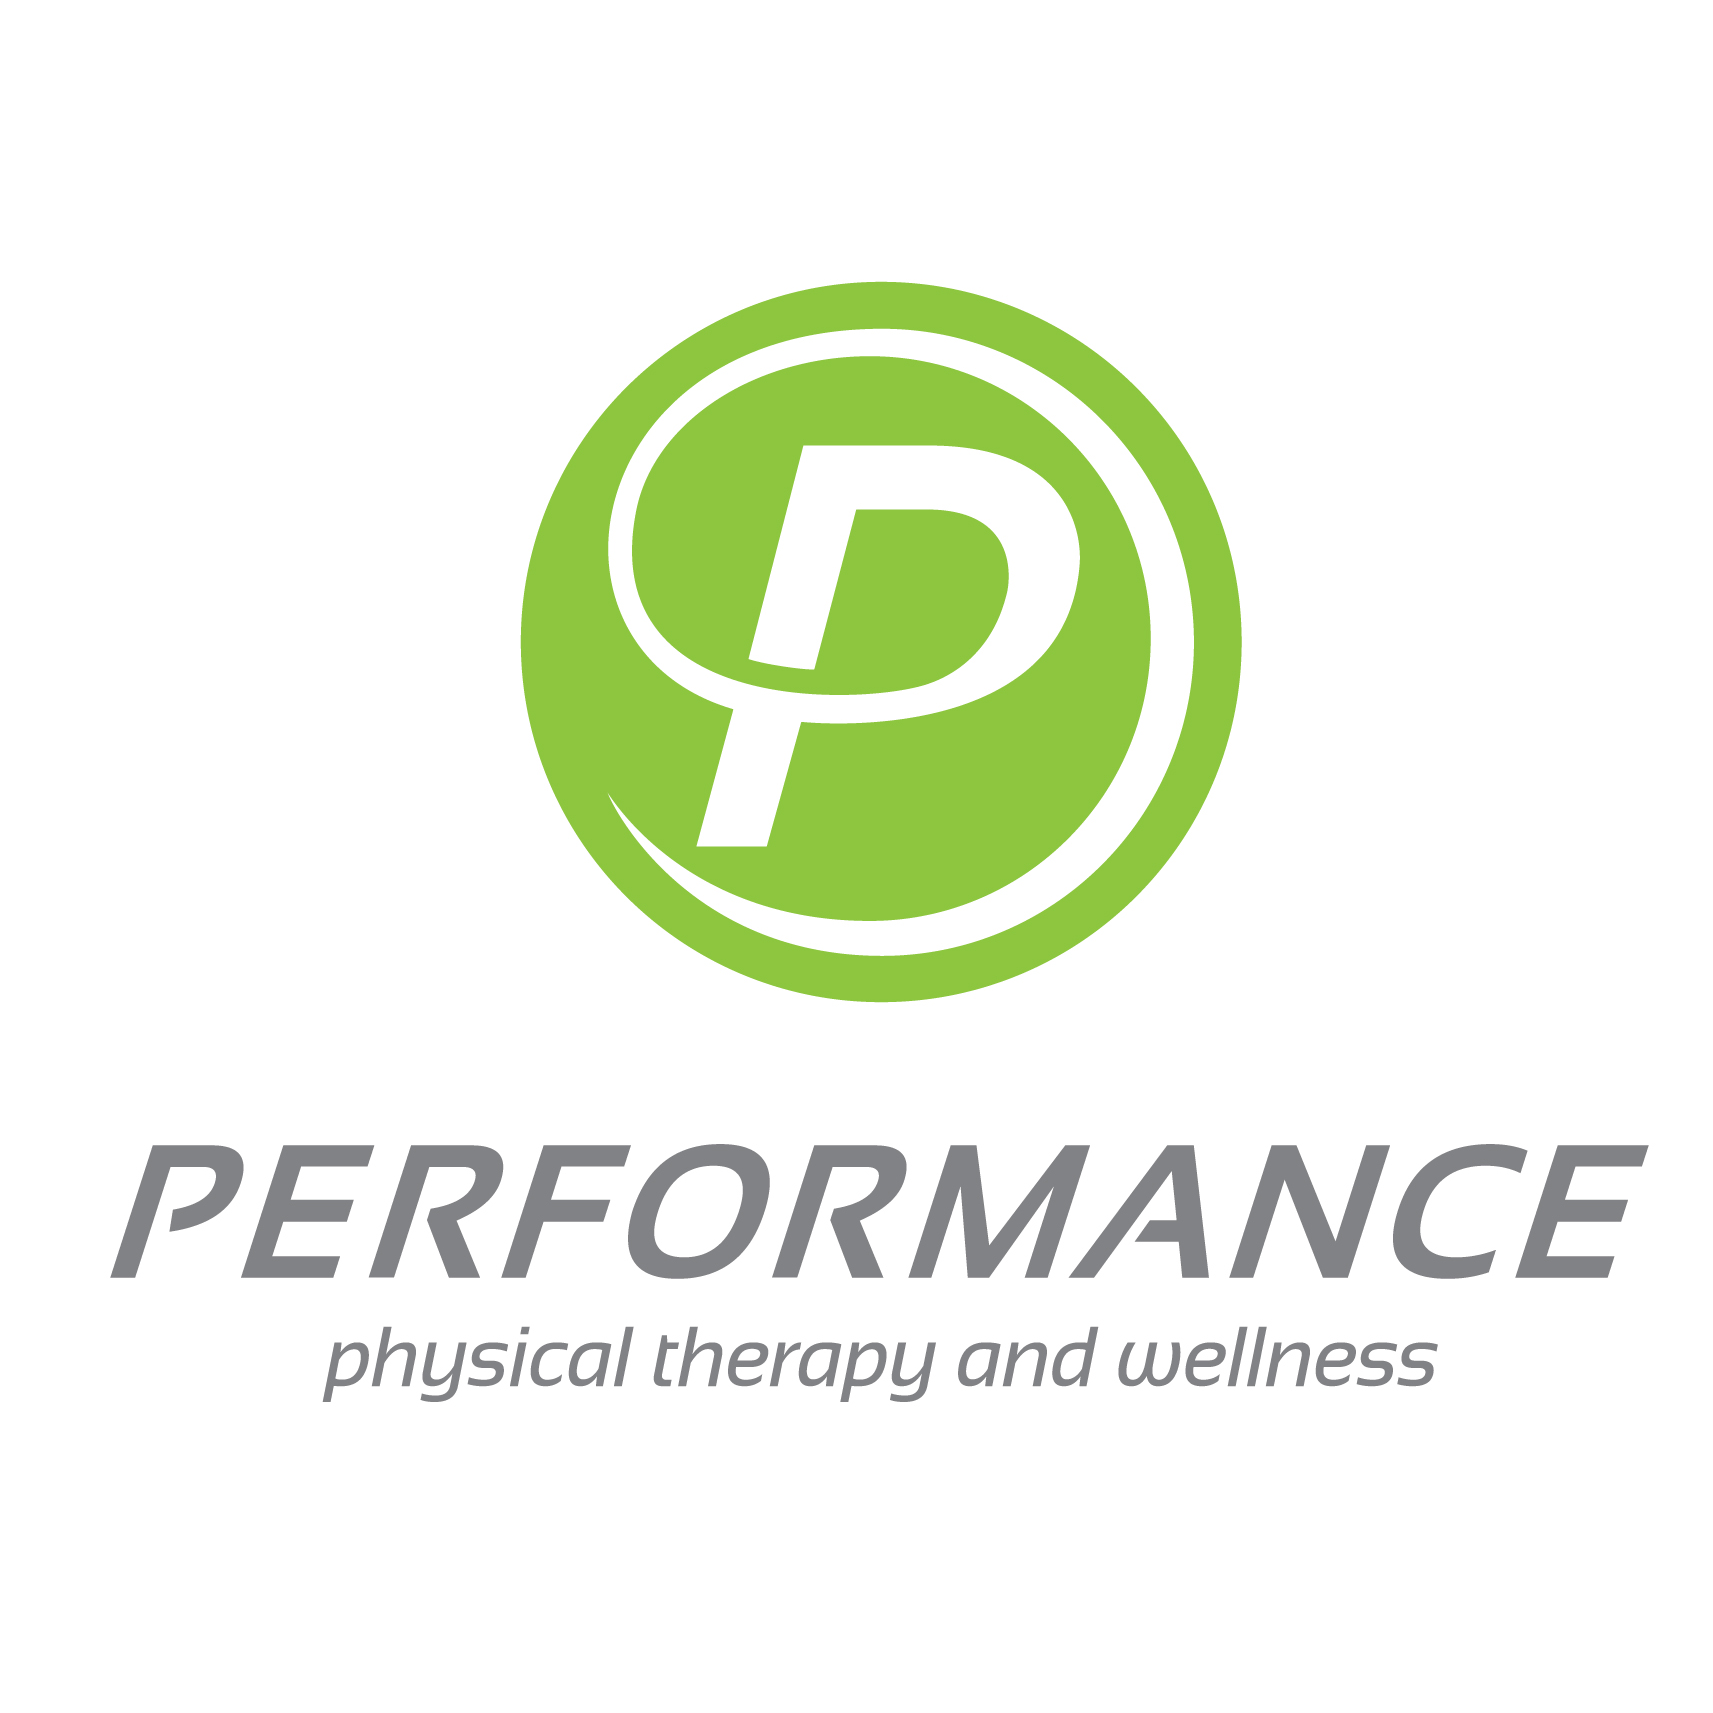 Performance Physical Therapy And Wellness - Closed